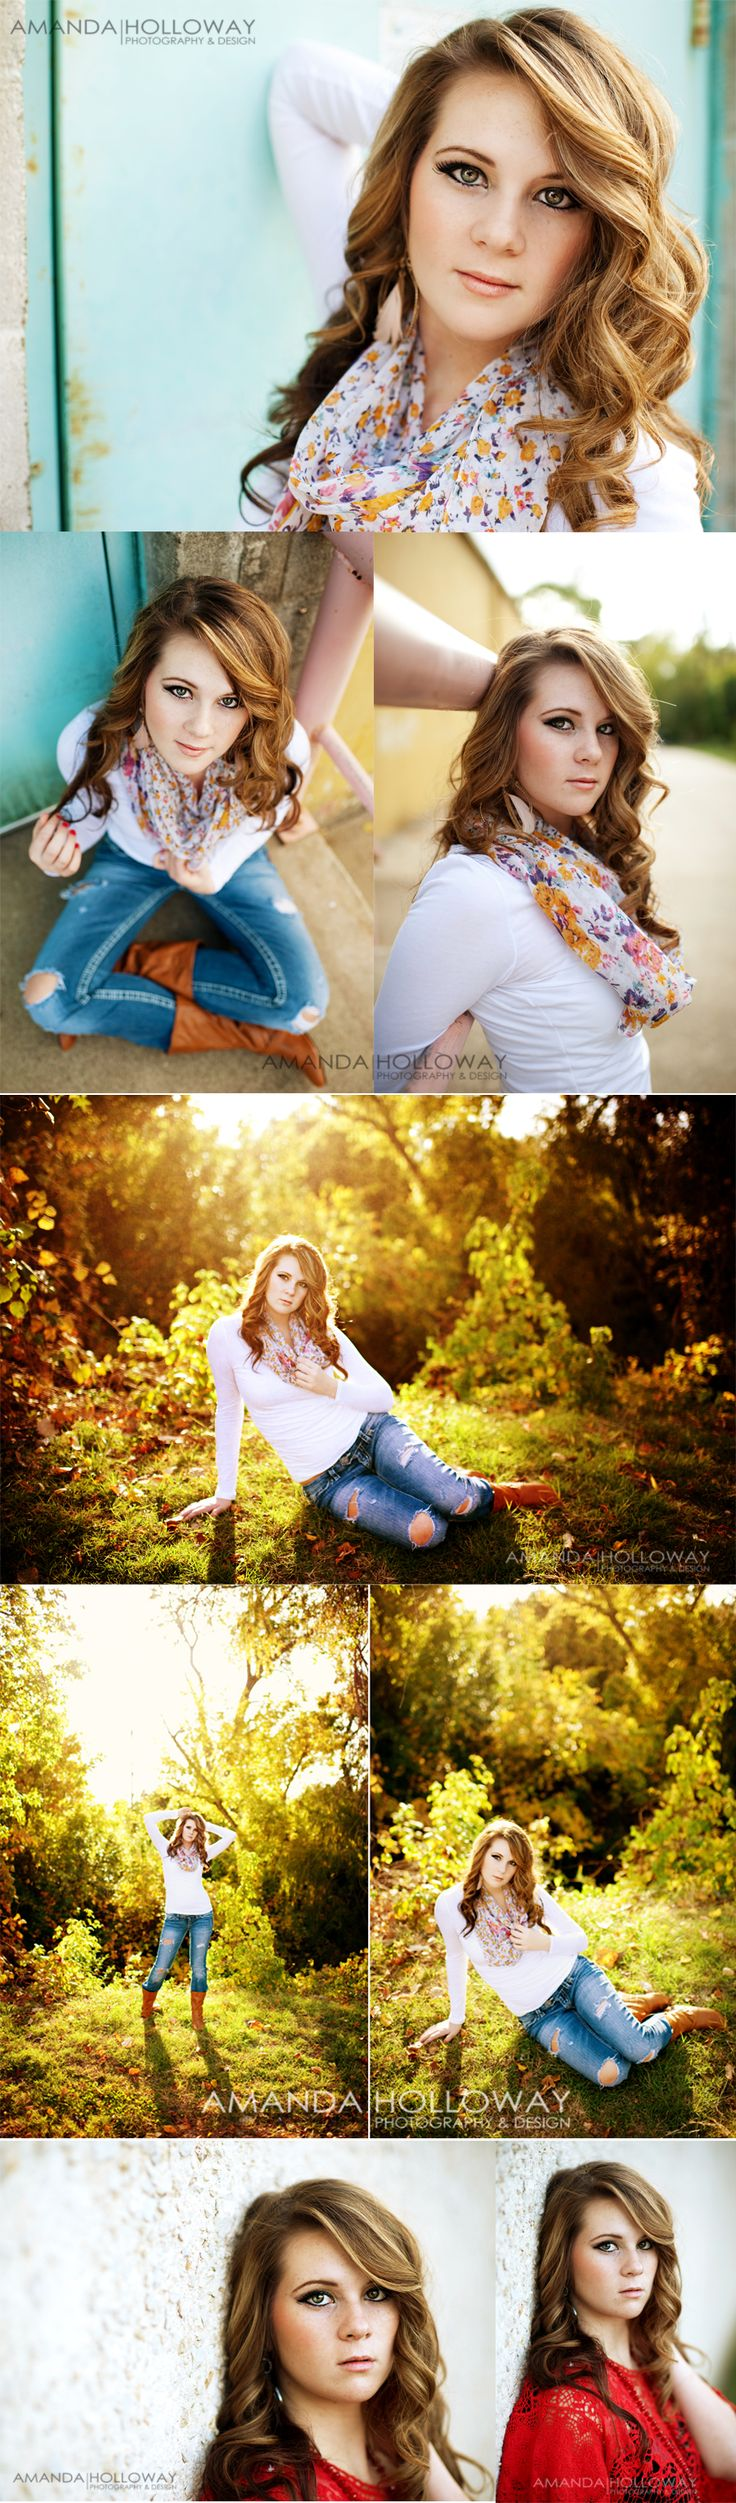 Really impressed by the artistry of Amanda Holloway and her style of photography for senior sessions.